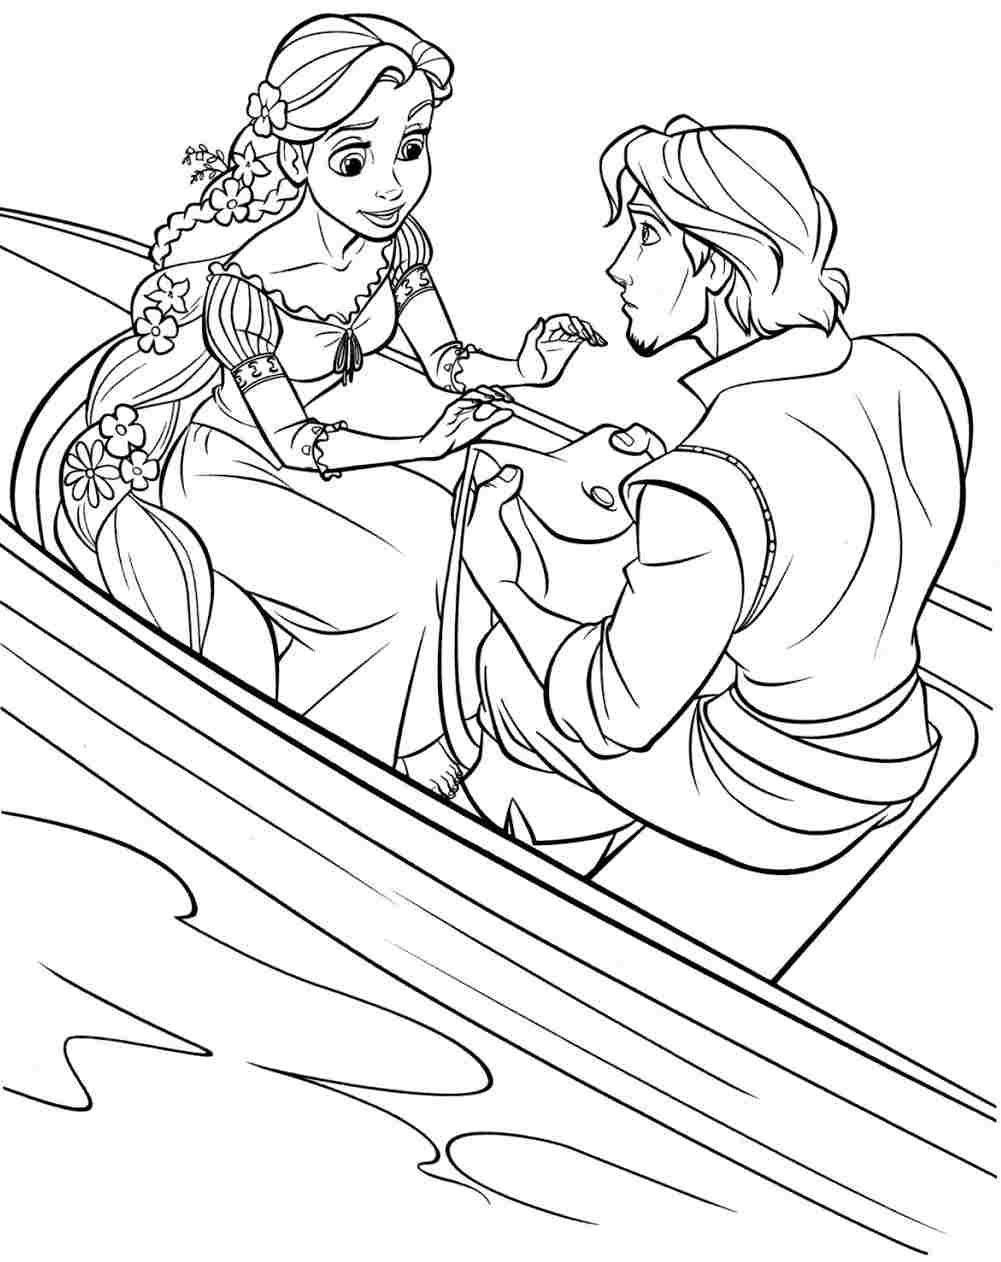 disney tangled coloring pages printable | Printable Free Disney ...